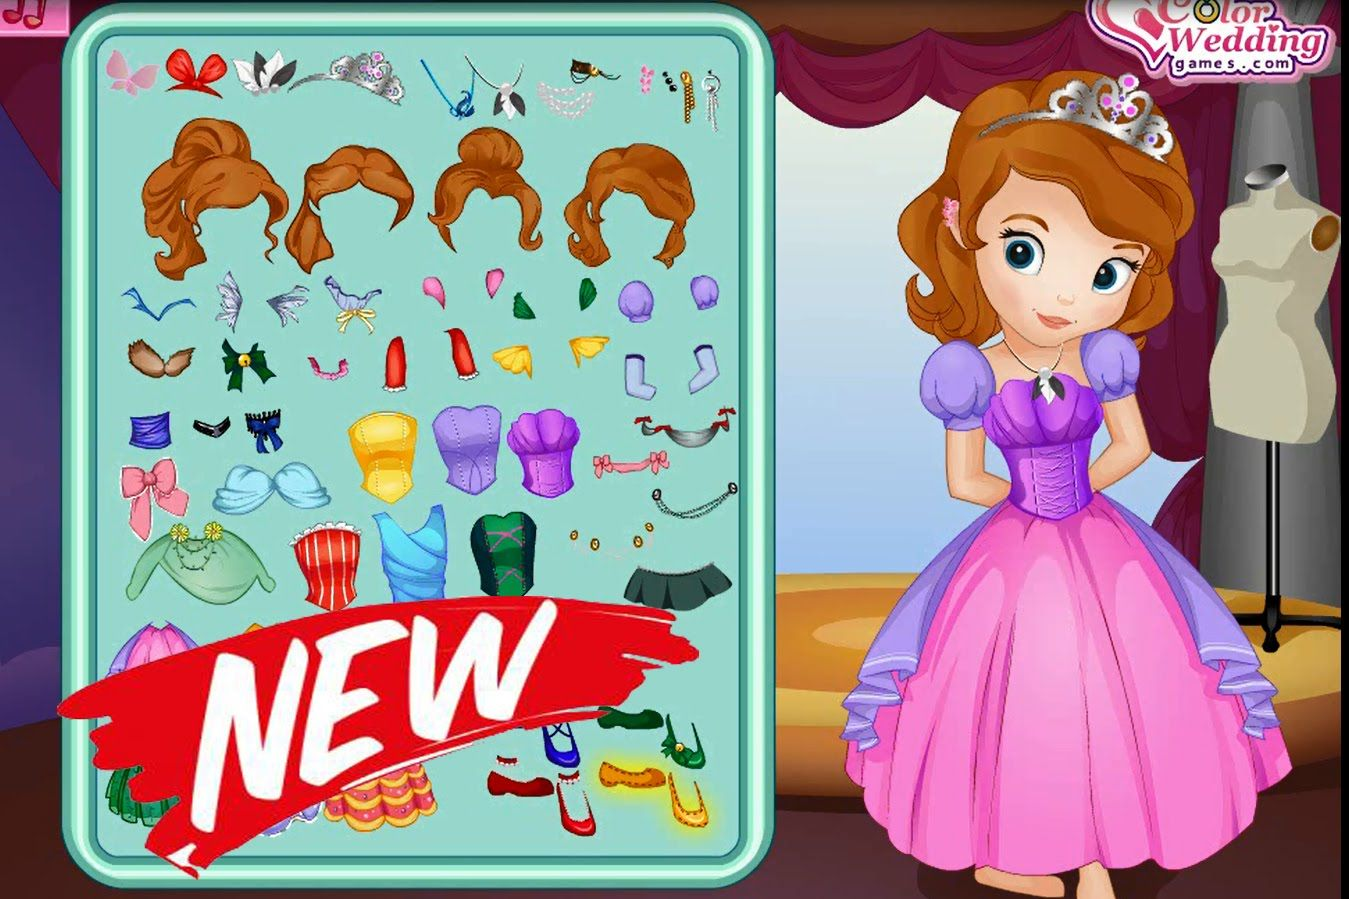 Uncategorized Princess Games For Kids princess sofia birthday dress play the girl game online kidsgames4u kidsgames